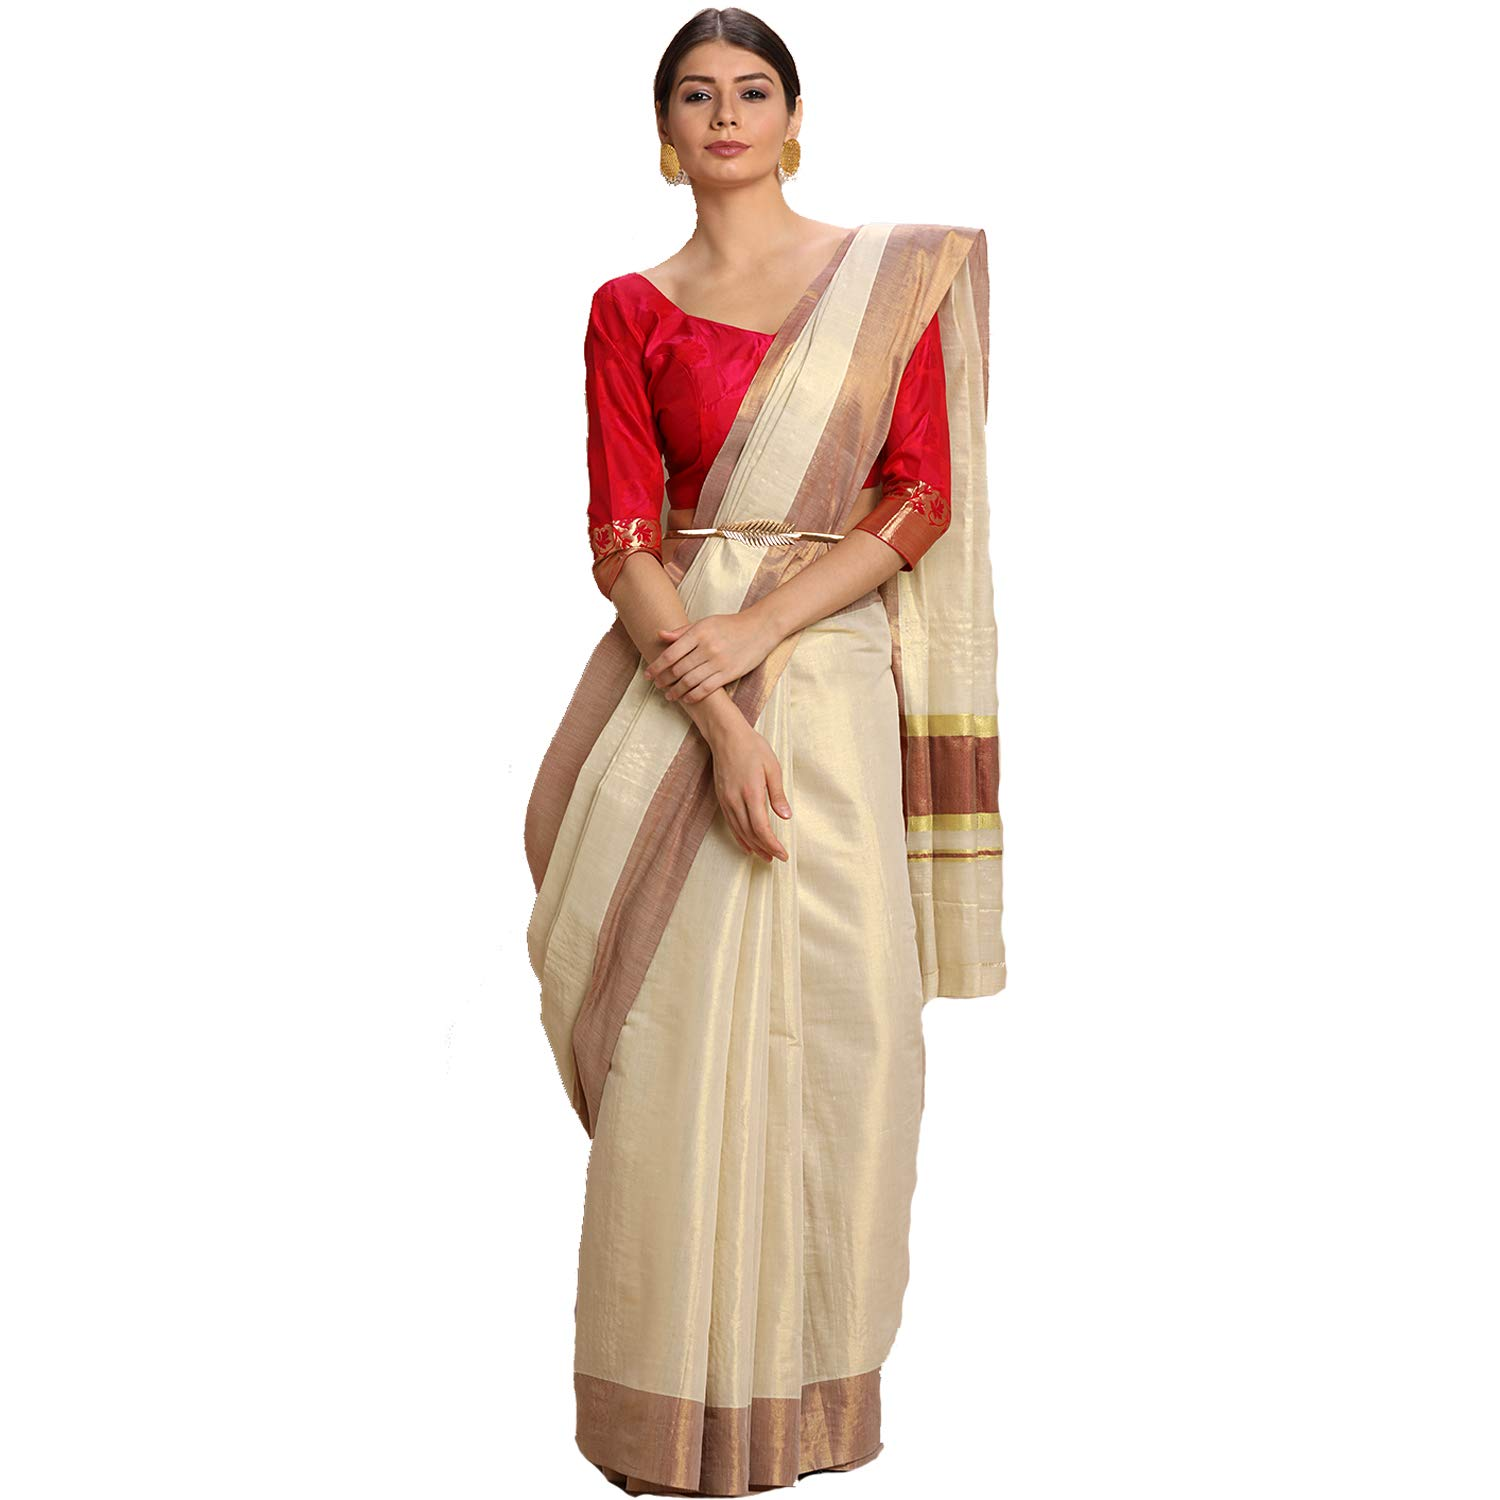 Tissue Body 3x3 Kerala Kasavu Saree